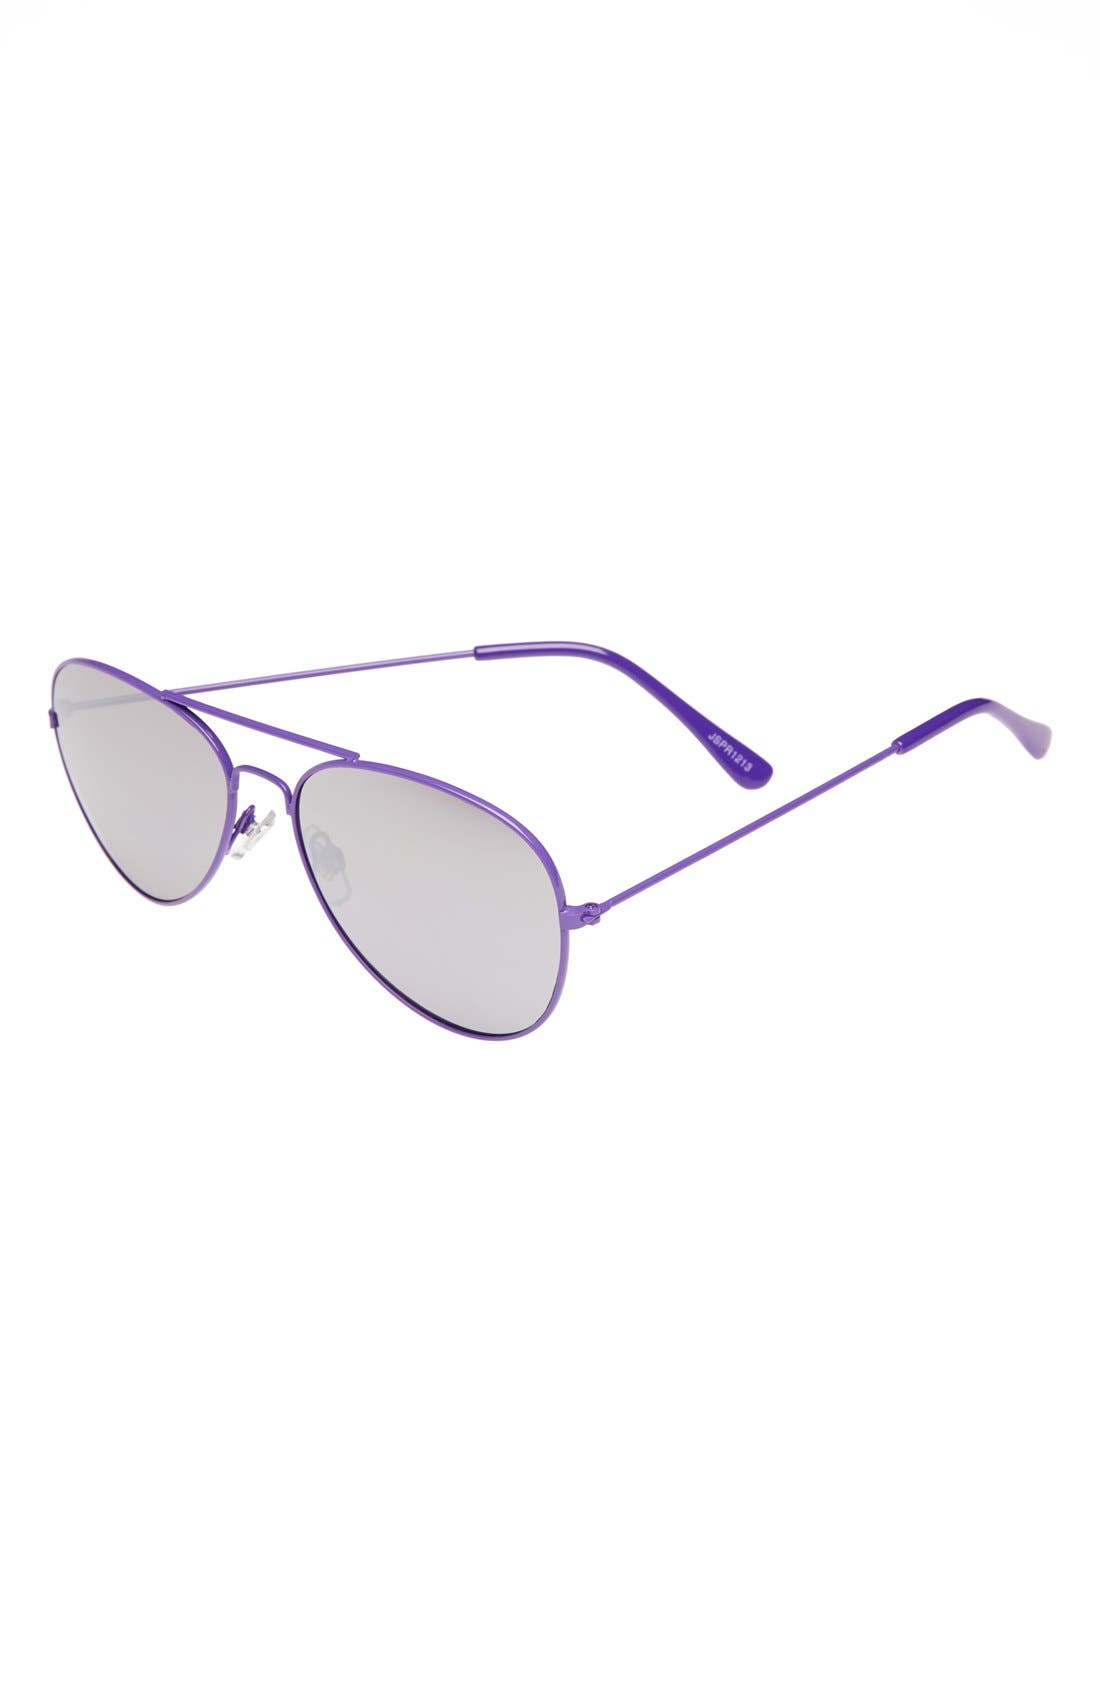 Alternate Image 1 Selected - Fantas Eyes 'Jetsetter' Aviator Sunglasses (Girls)